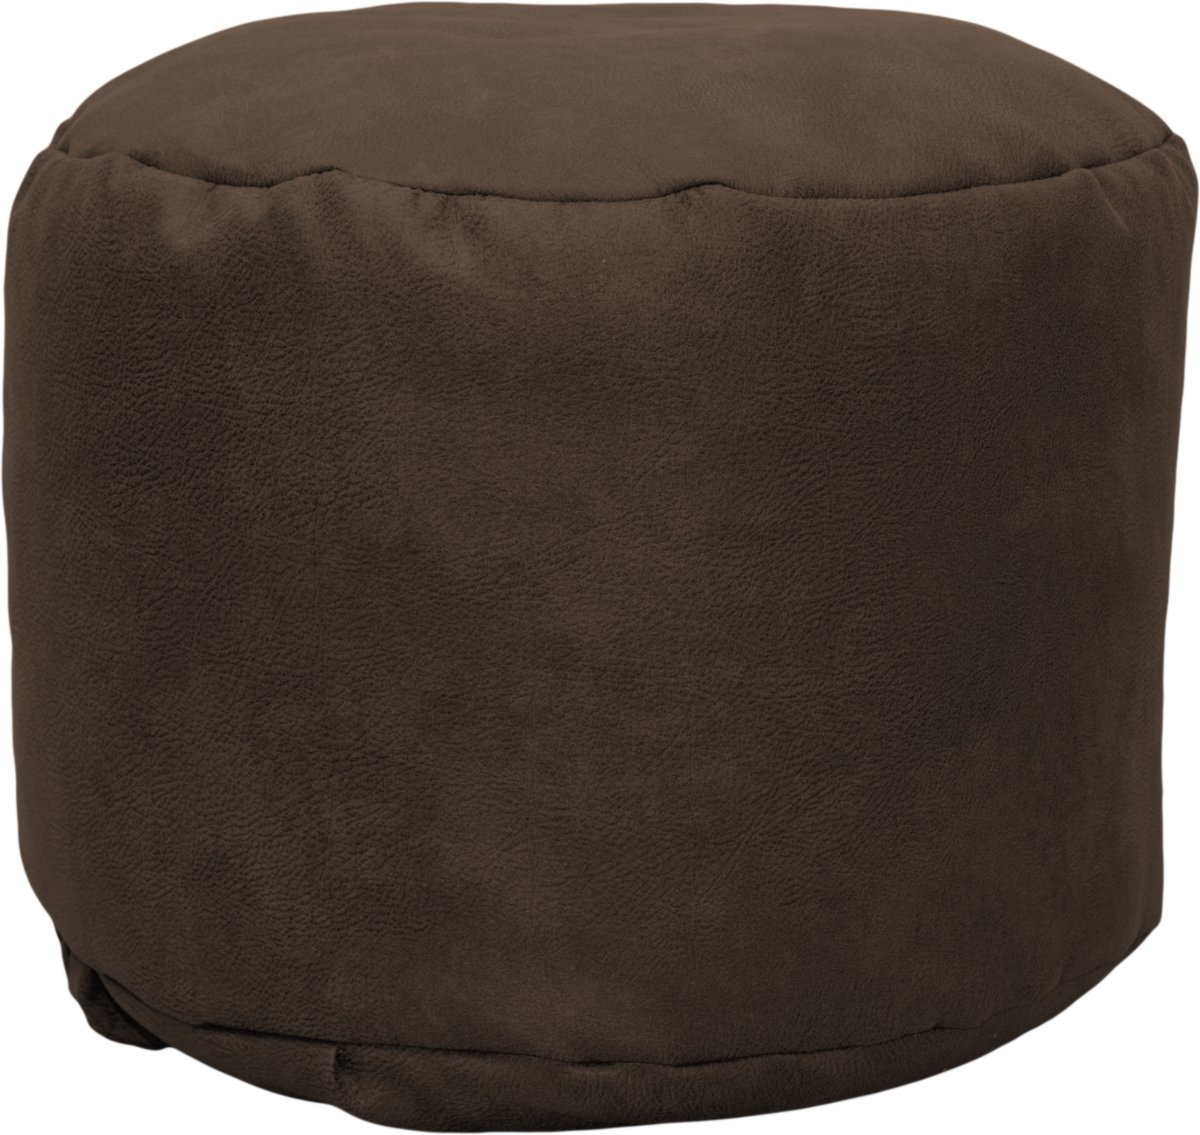 Drop & Sit Leather look poef Rond (50 x 50 x 42 cm) - Tobacco kopen